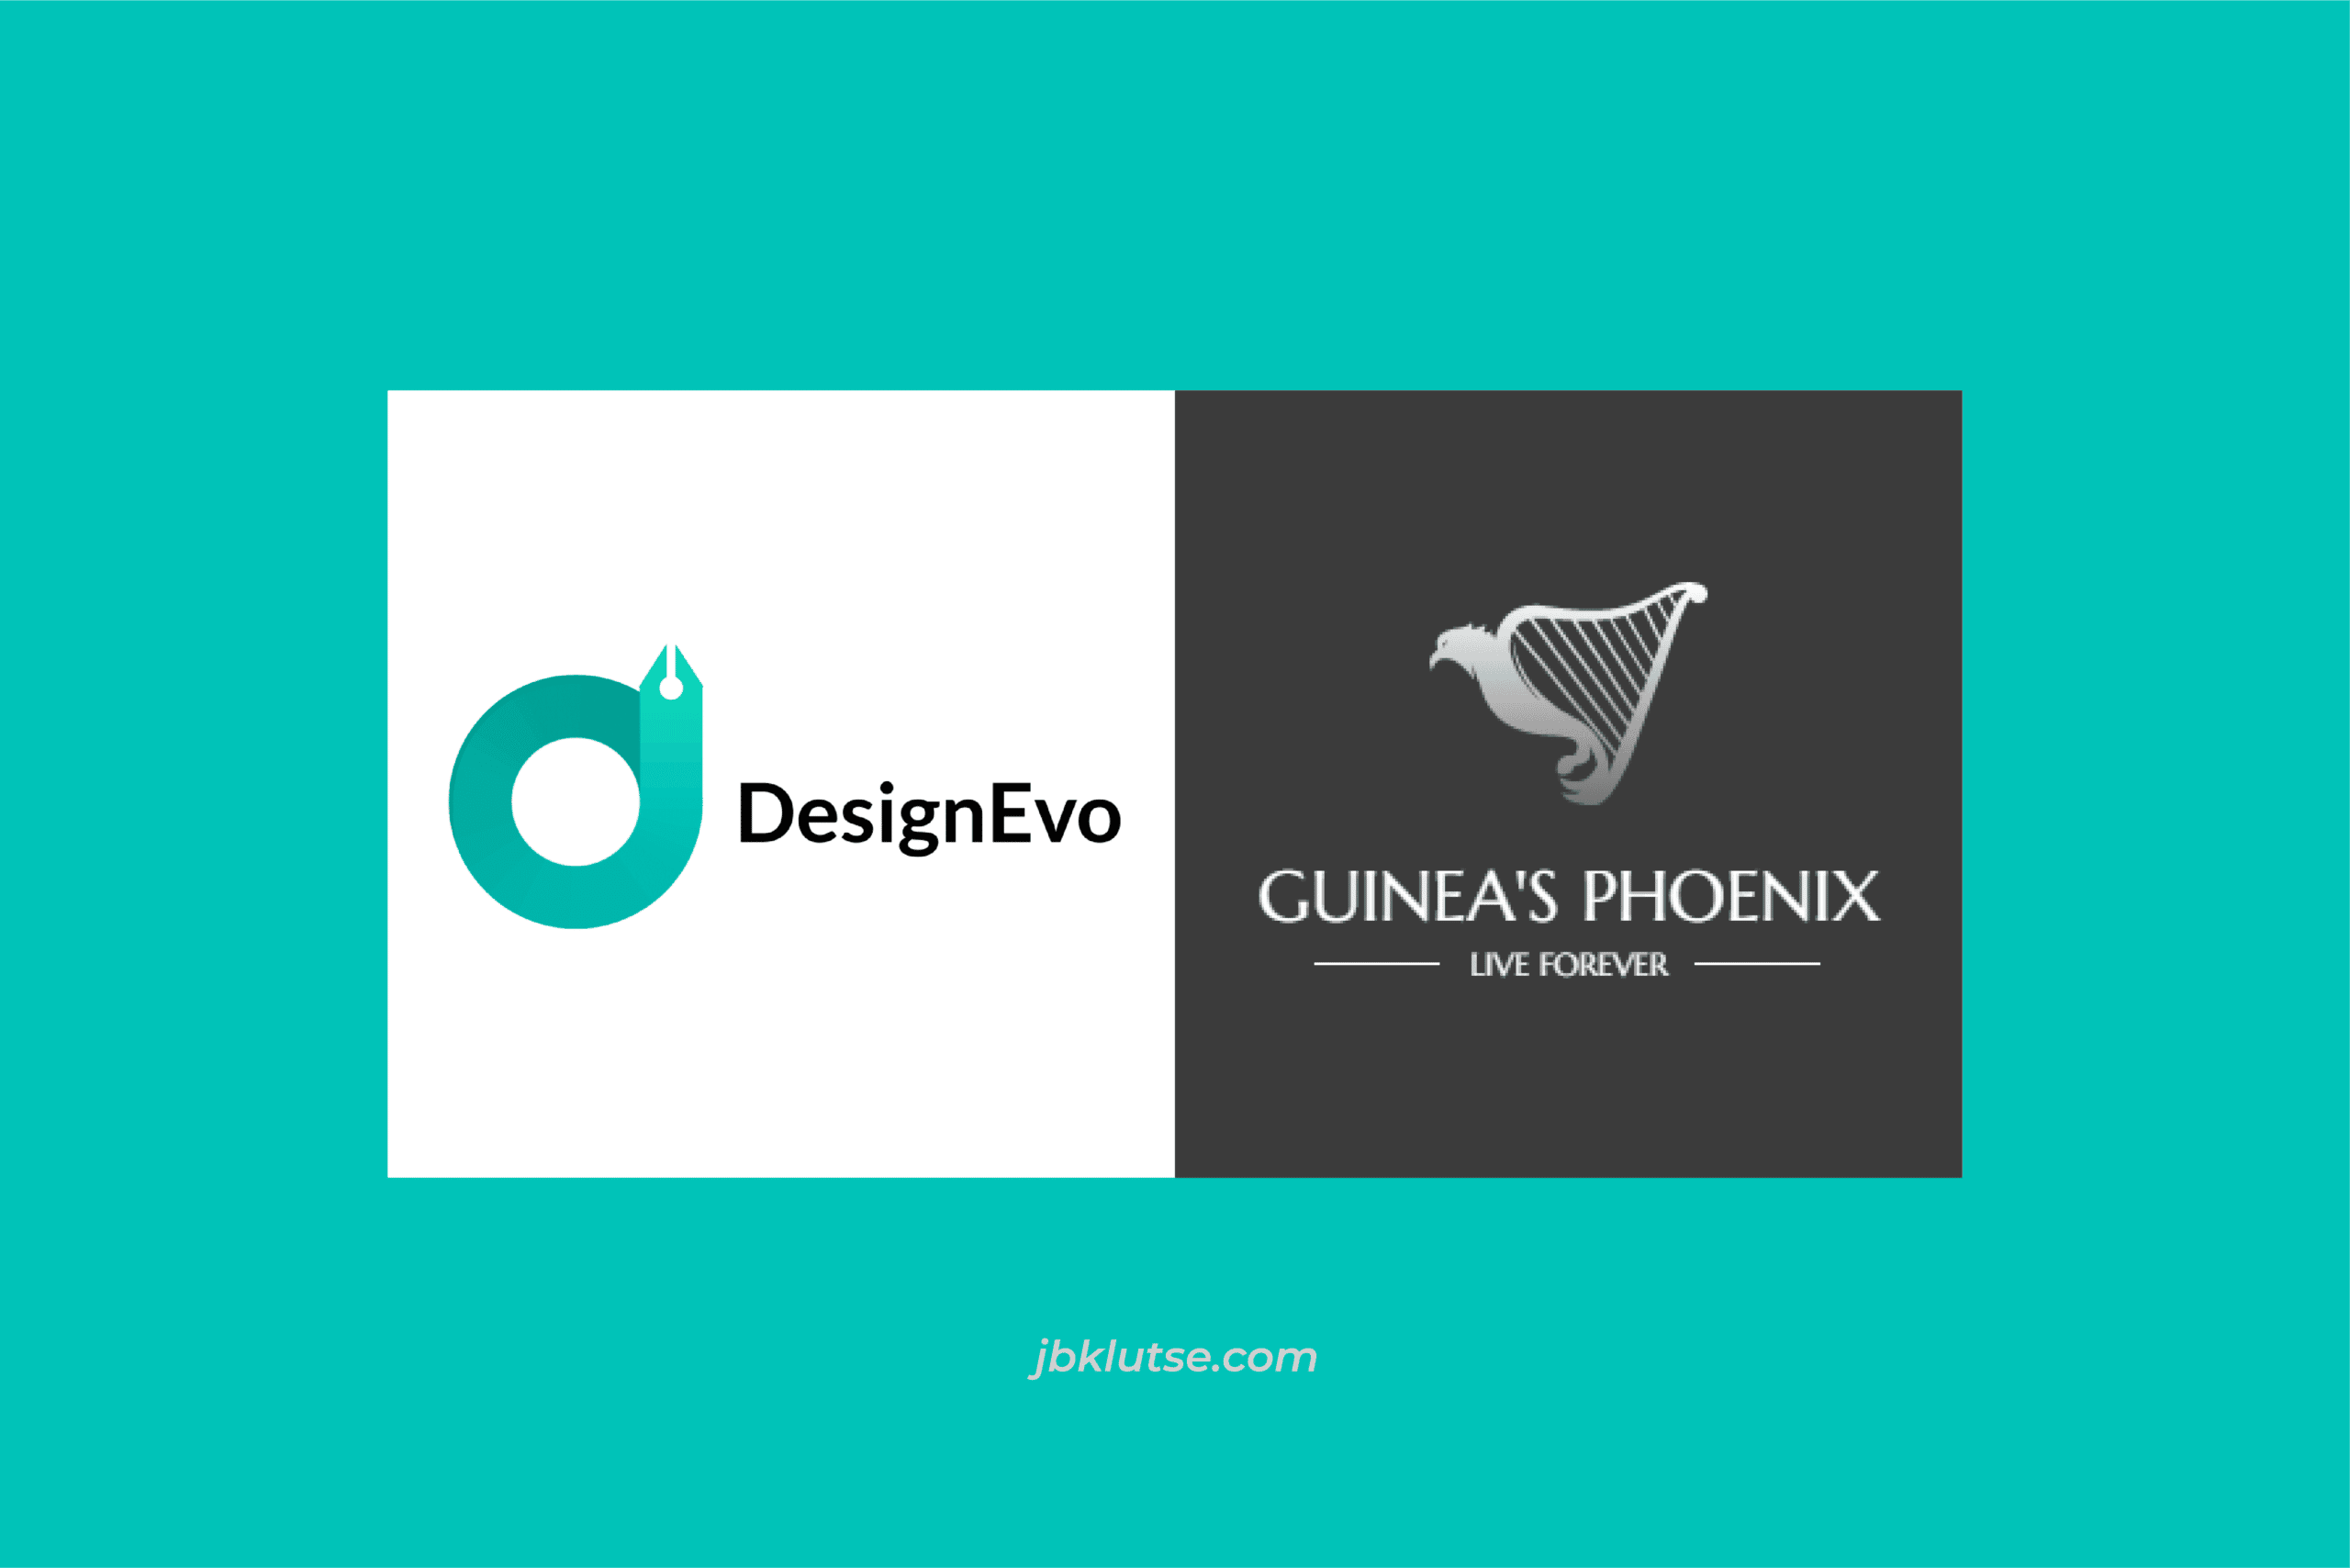 DesignEvo review: Perfect for your first statement logo